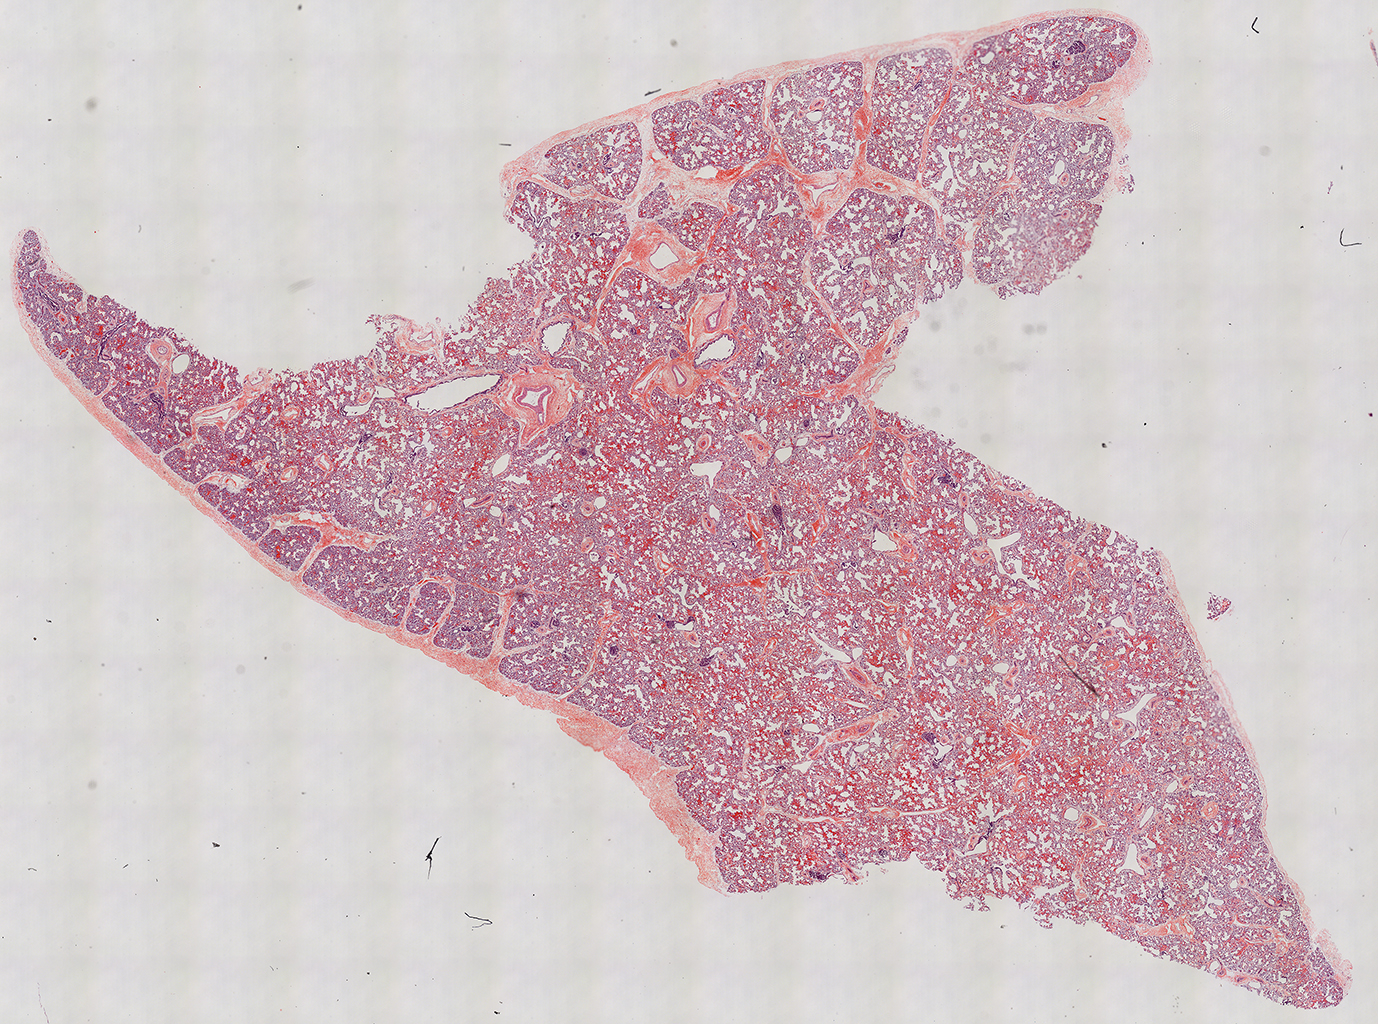 H&E Staining of 1 Day-Old Human Donor D150-5A1.16